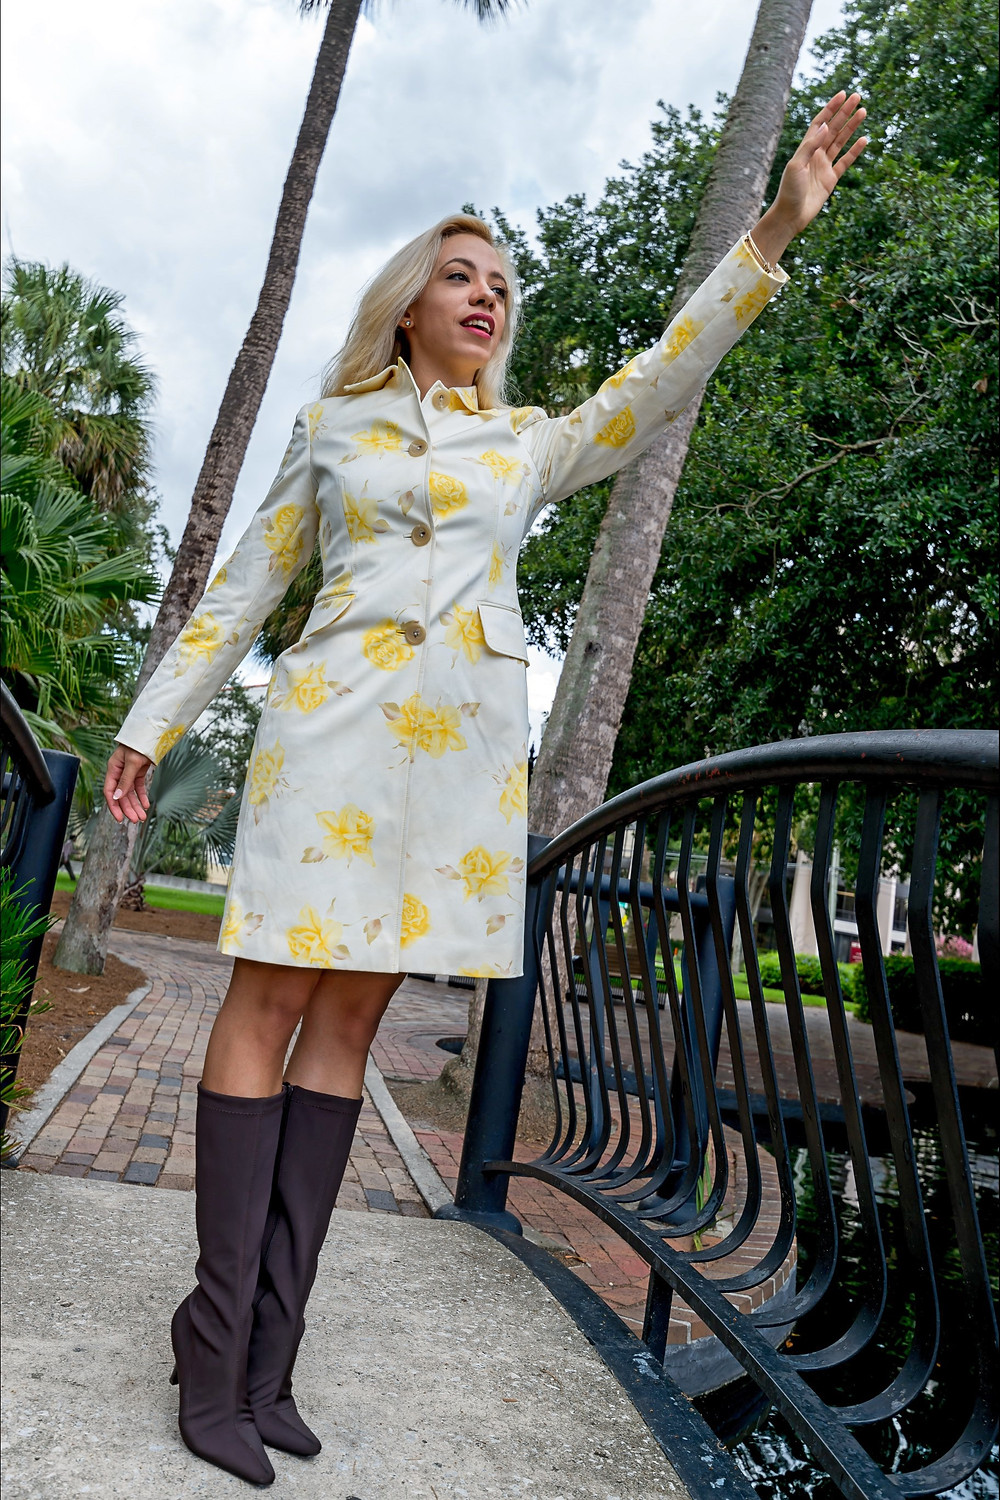 Katrina-Belle-Orlando-Fashion-Blogger-Katrina-Belle-Beauty-Orlando-fashion-blog-Orlando-blogger-Florida-blogger-Florida-fashion-blogger -Downtown-Orlando-Daniel-Bastos-Photography